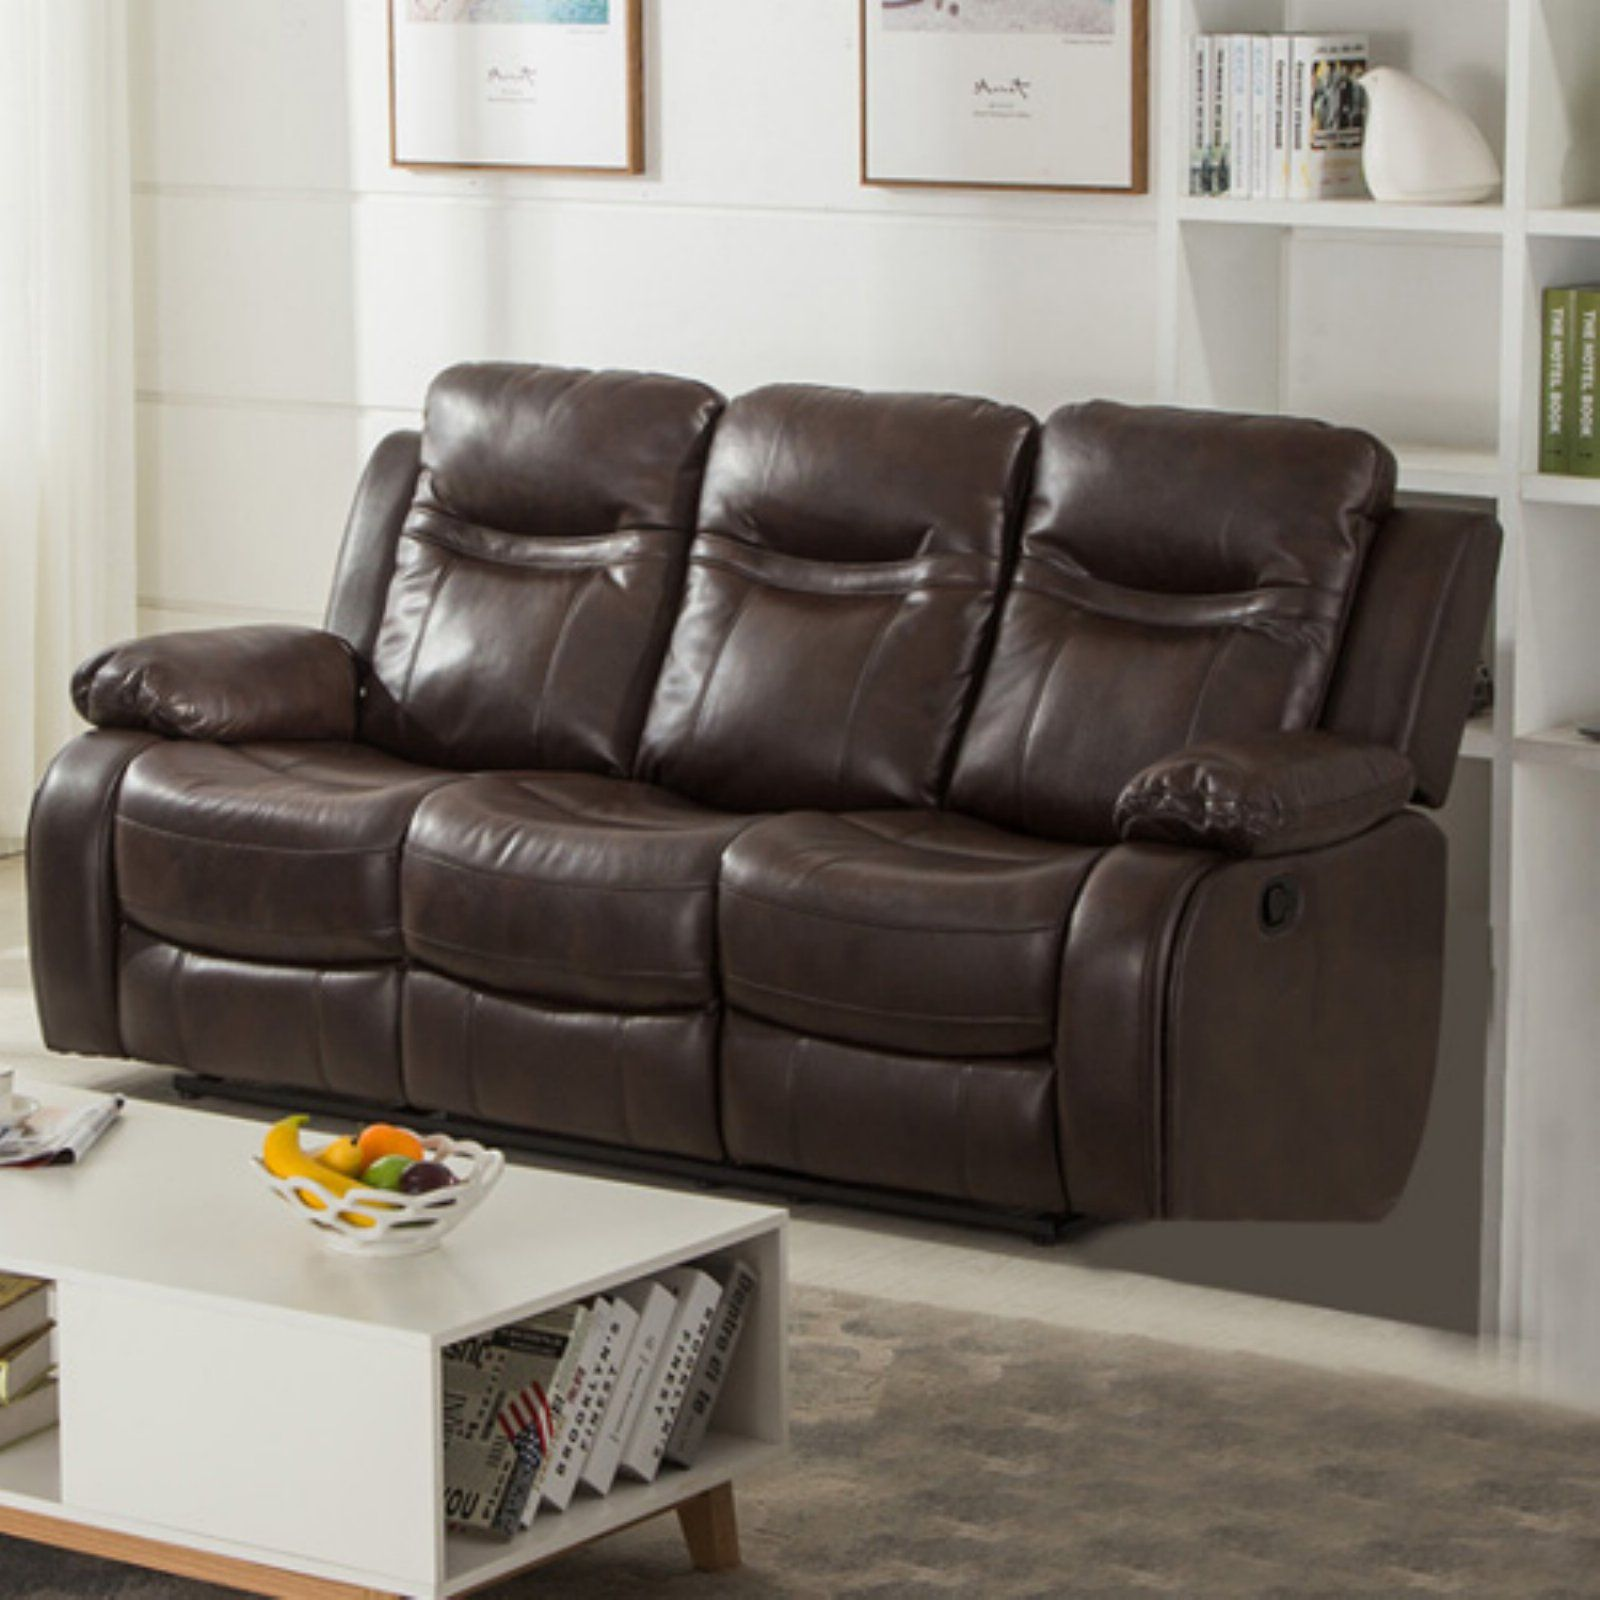 Gordon Motion Leather Air Double Recliner Sofa With Drop Down Table Brown